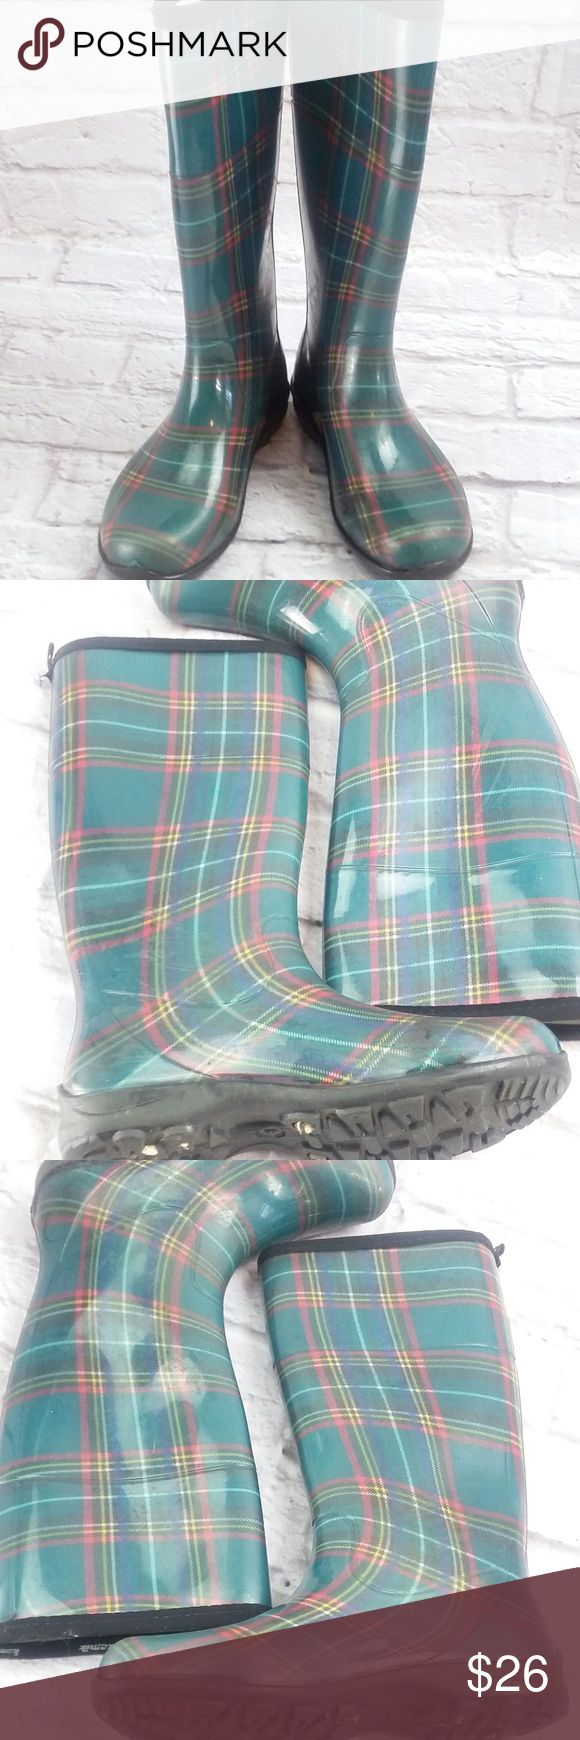 "Edinburgh' Plaid Rain Boot (Women), Green size 8 Plaid print waterproof rubber upper Heel loop tab 12½"" shaft height, pull on 14½"" calf circumference Round toe Fabric lining 1"" molded heel Treaded rubber sole good used condition, some scuffs  size 8  Please message with any questions! Kamik Shoes Winter & Rain Boots"